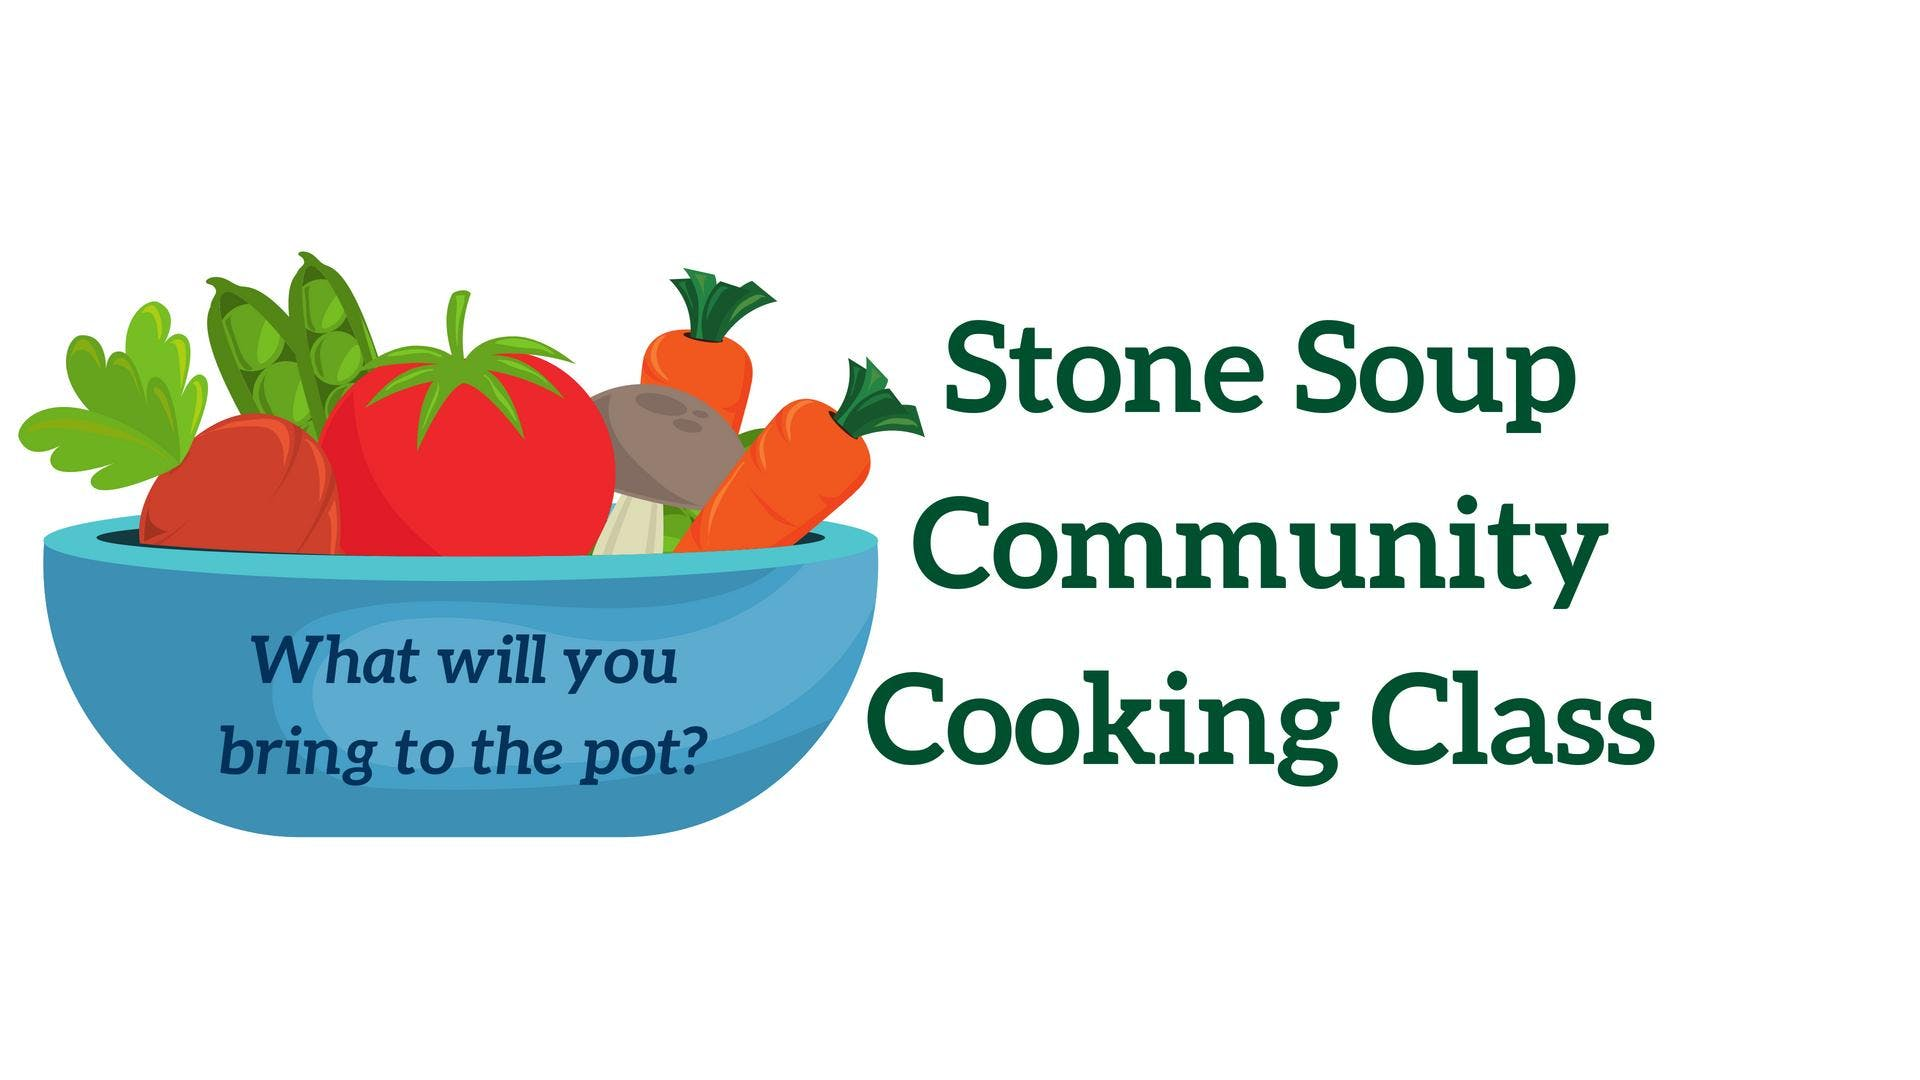 Stone Soup Community Cooking Class at Community Cooking School ...